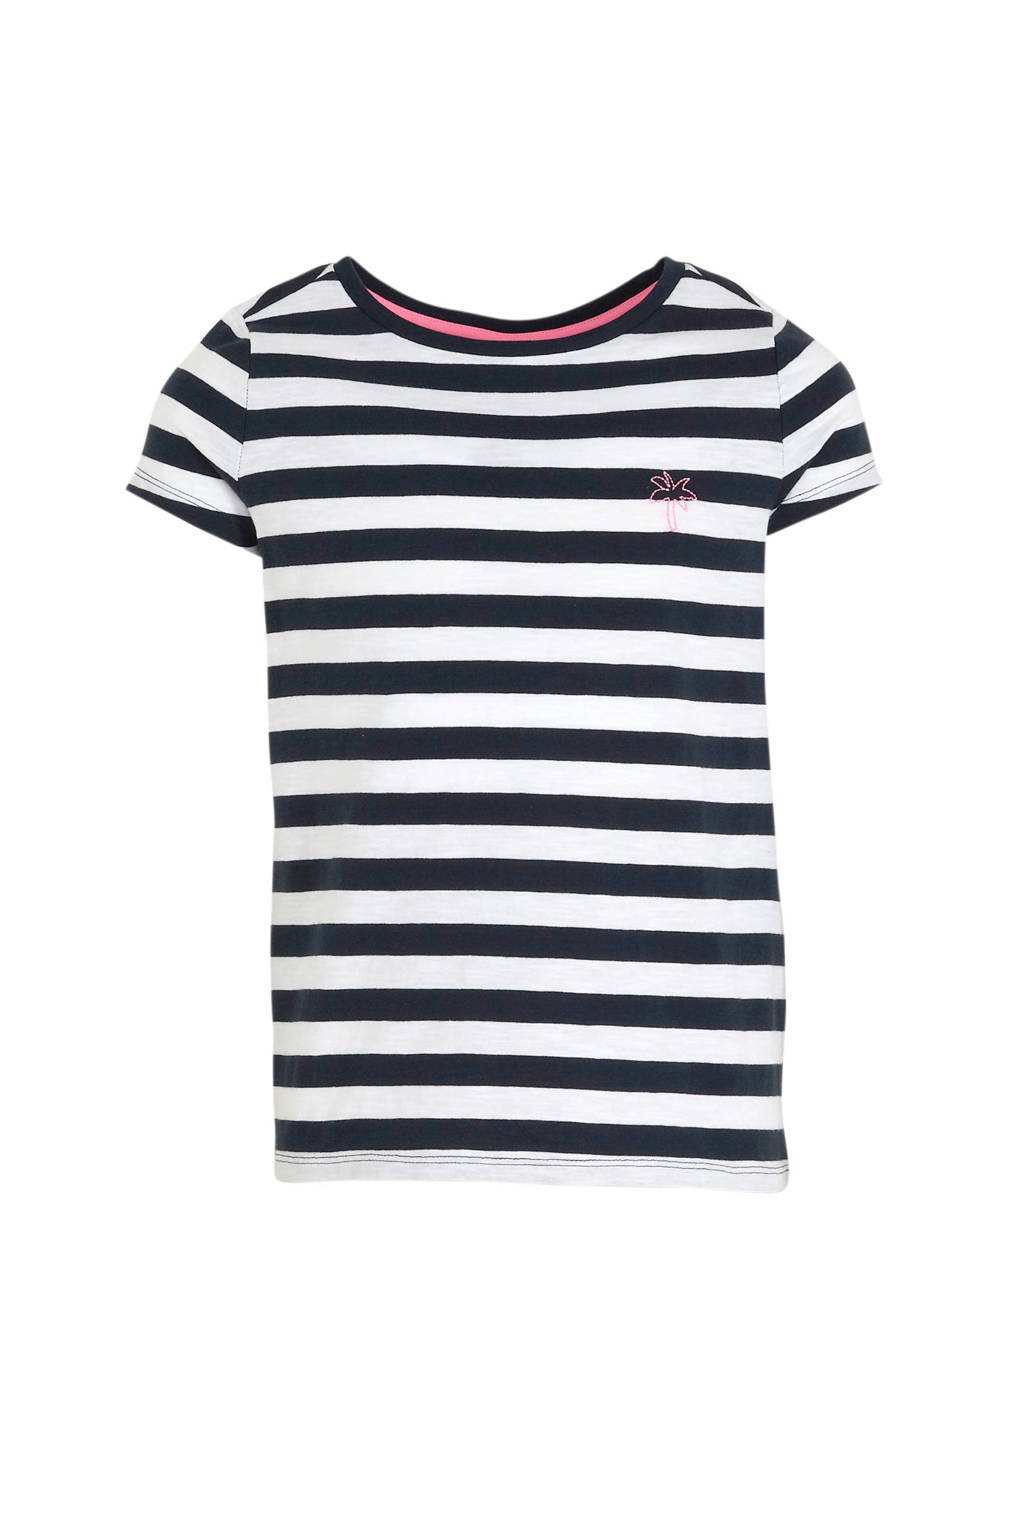 s.Oliver gestreept T-shirt donkerblauw/wit, Donkerblauw/wit